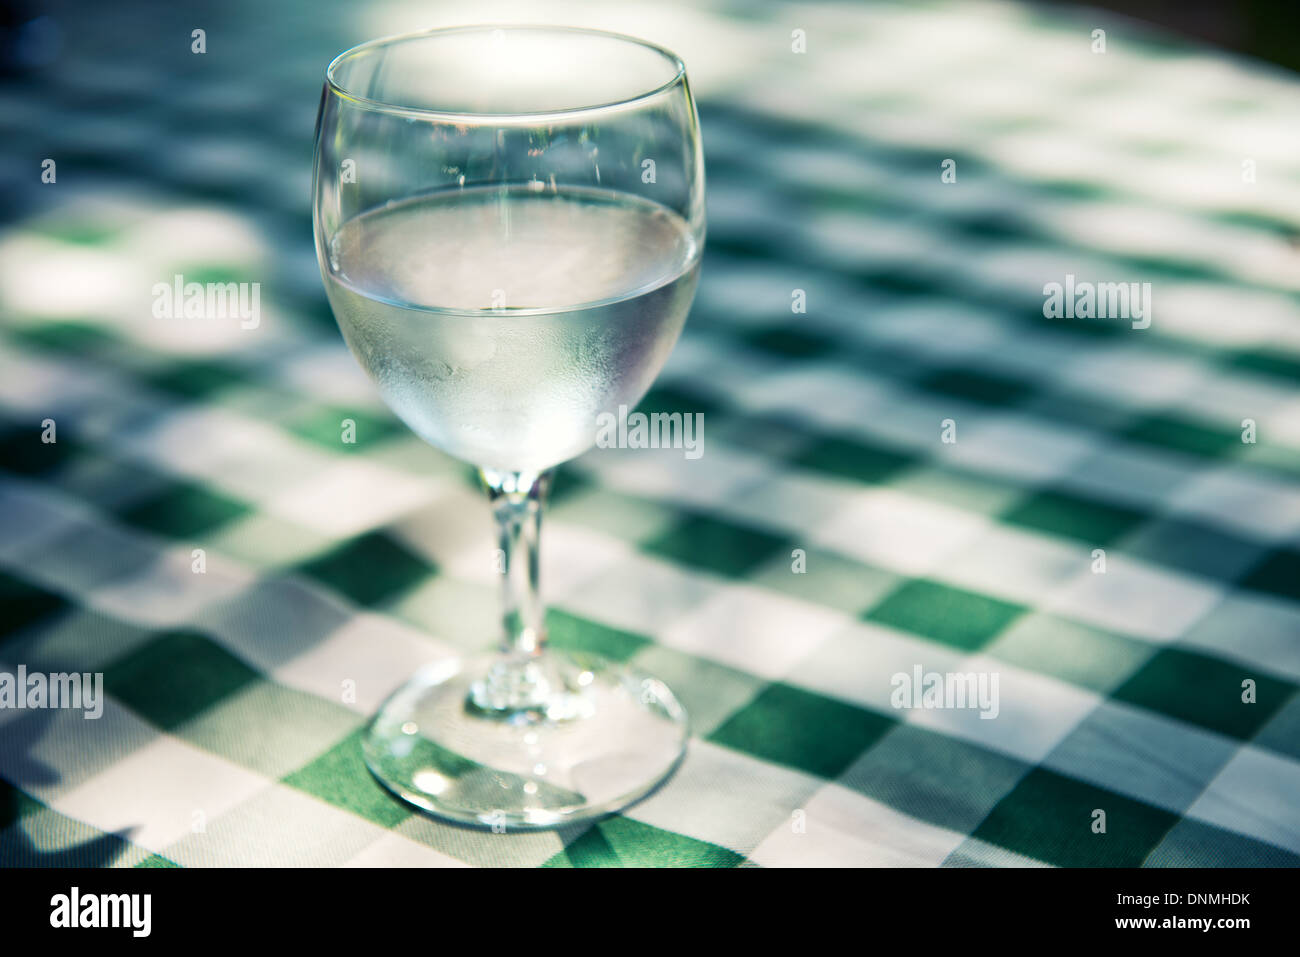 Glass of fresh water on table with green checkered tablecloth - Stock Image